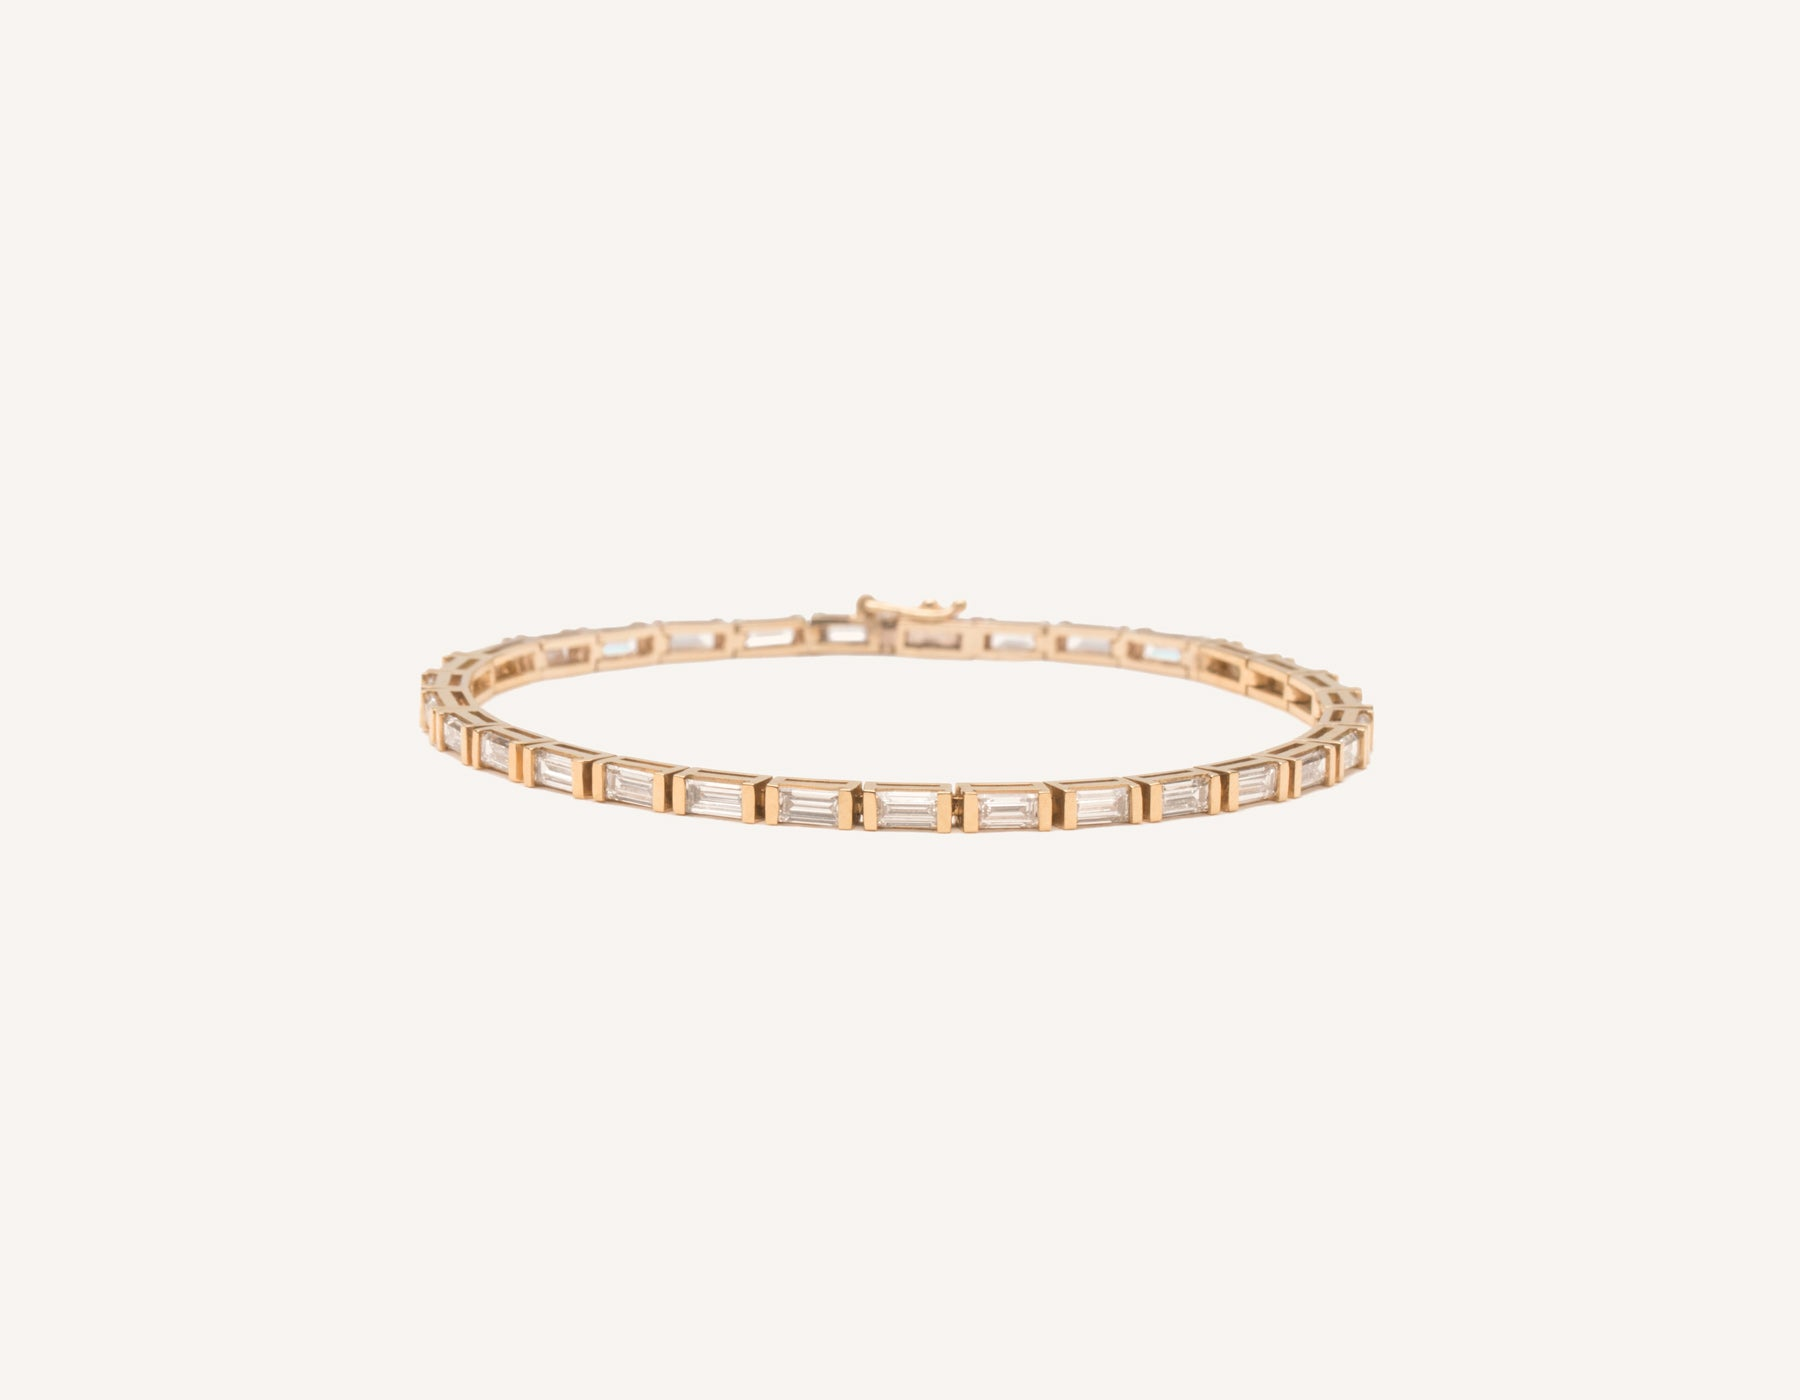 Classic elegant 18k solid gold Baguette Diamond Tennis Bracelet by Vrai and Oro, 18K Rose Gold